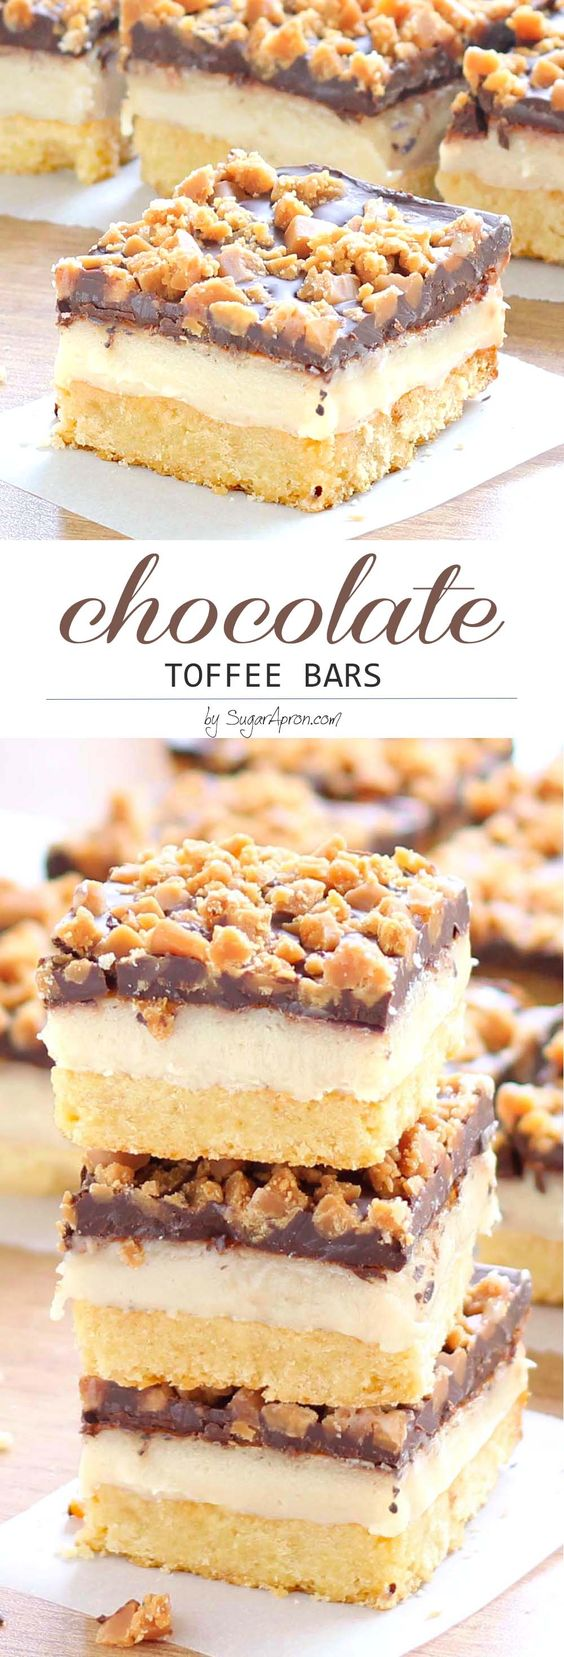 Chocolate Toffee Bars Dessert Recipe via Sugar Apron - Make these chocolate toffee bars for your next party and you'll be invited back! The sweetened condensed milk and chocolate toffee bits flavor combination makes this the perfect sweet treat.